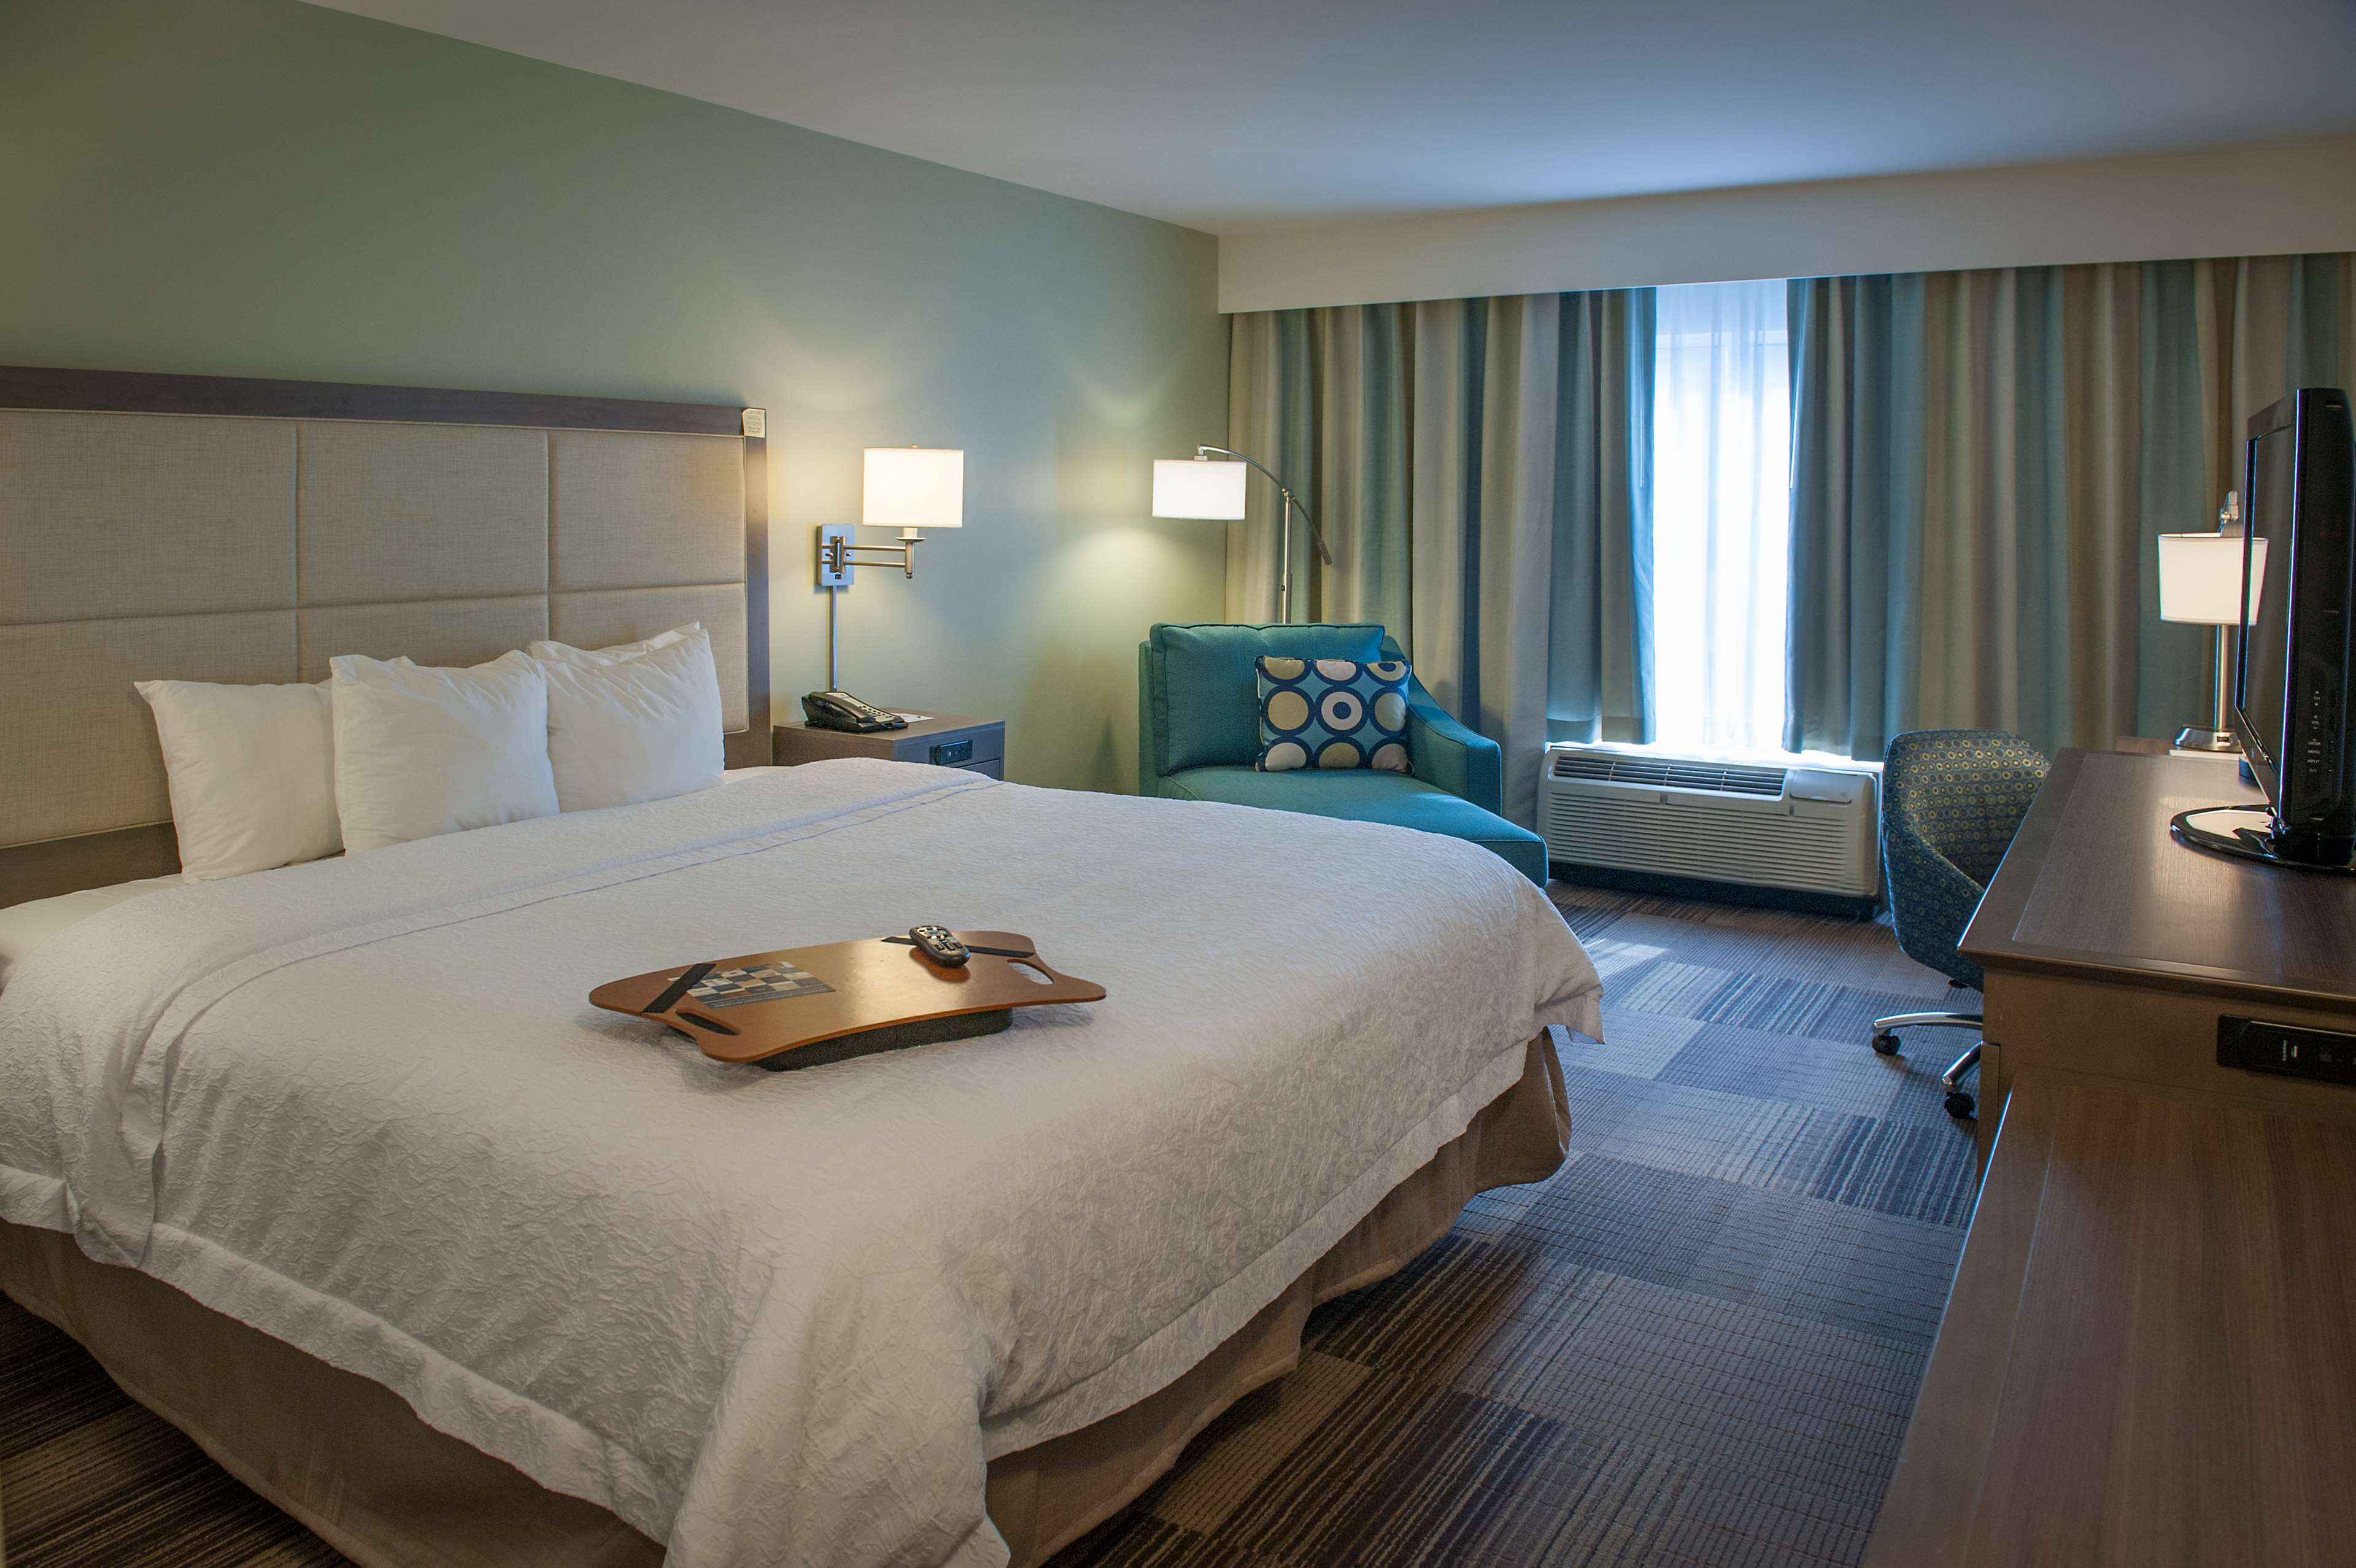 Hampton Inn & Suites New Orleans-Elmwood/Clearview Parkway Area image 11